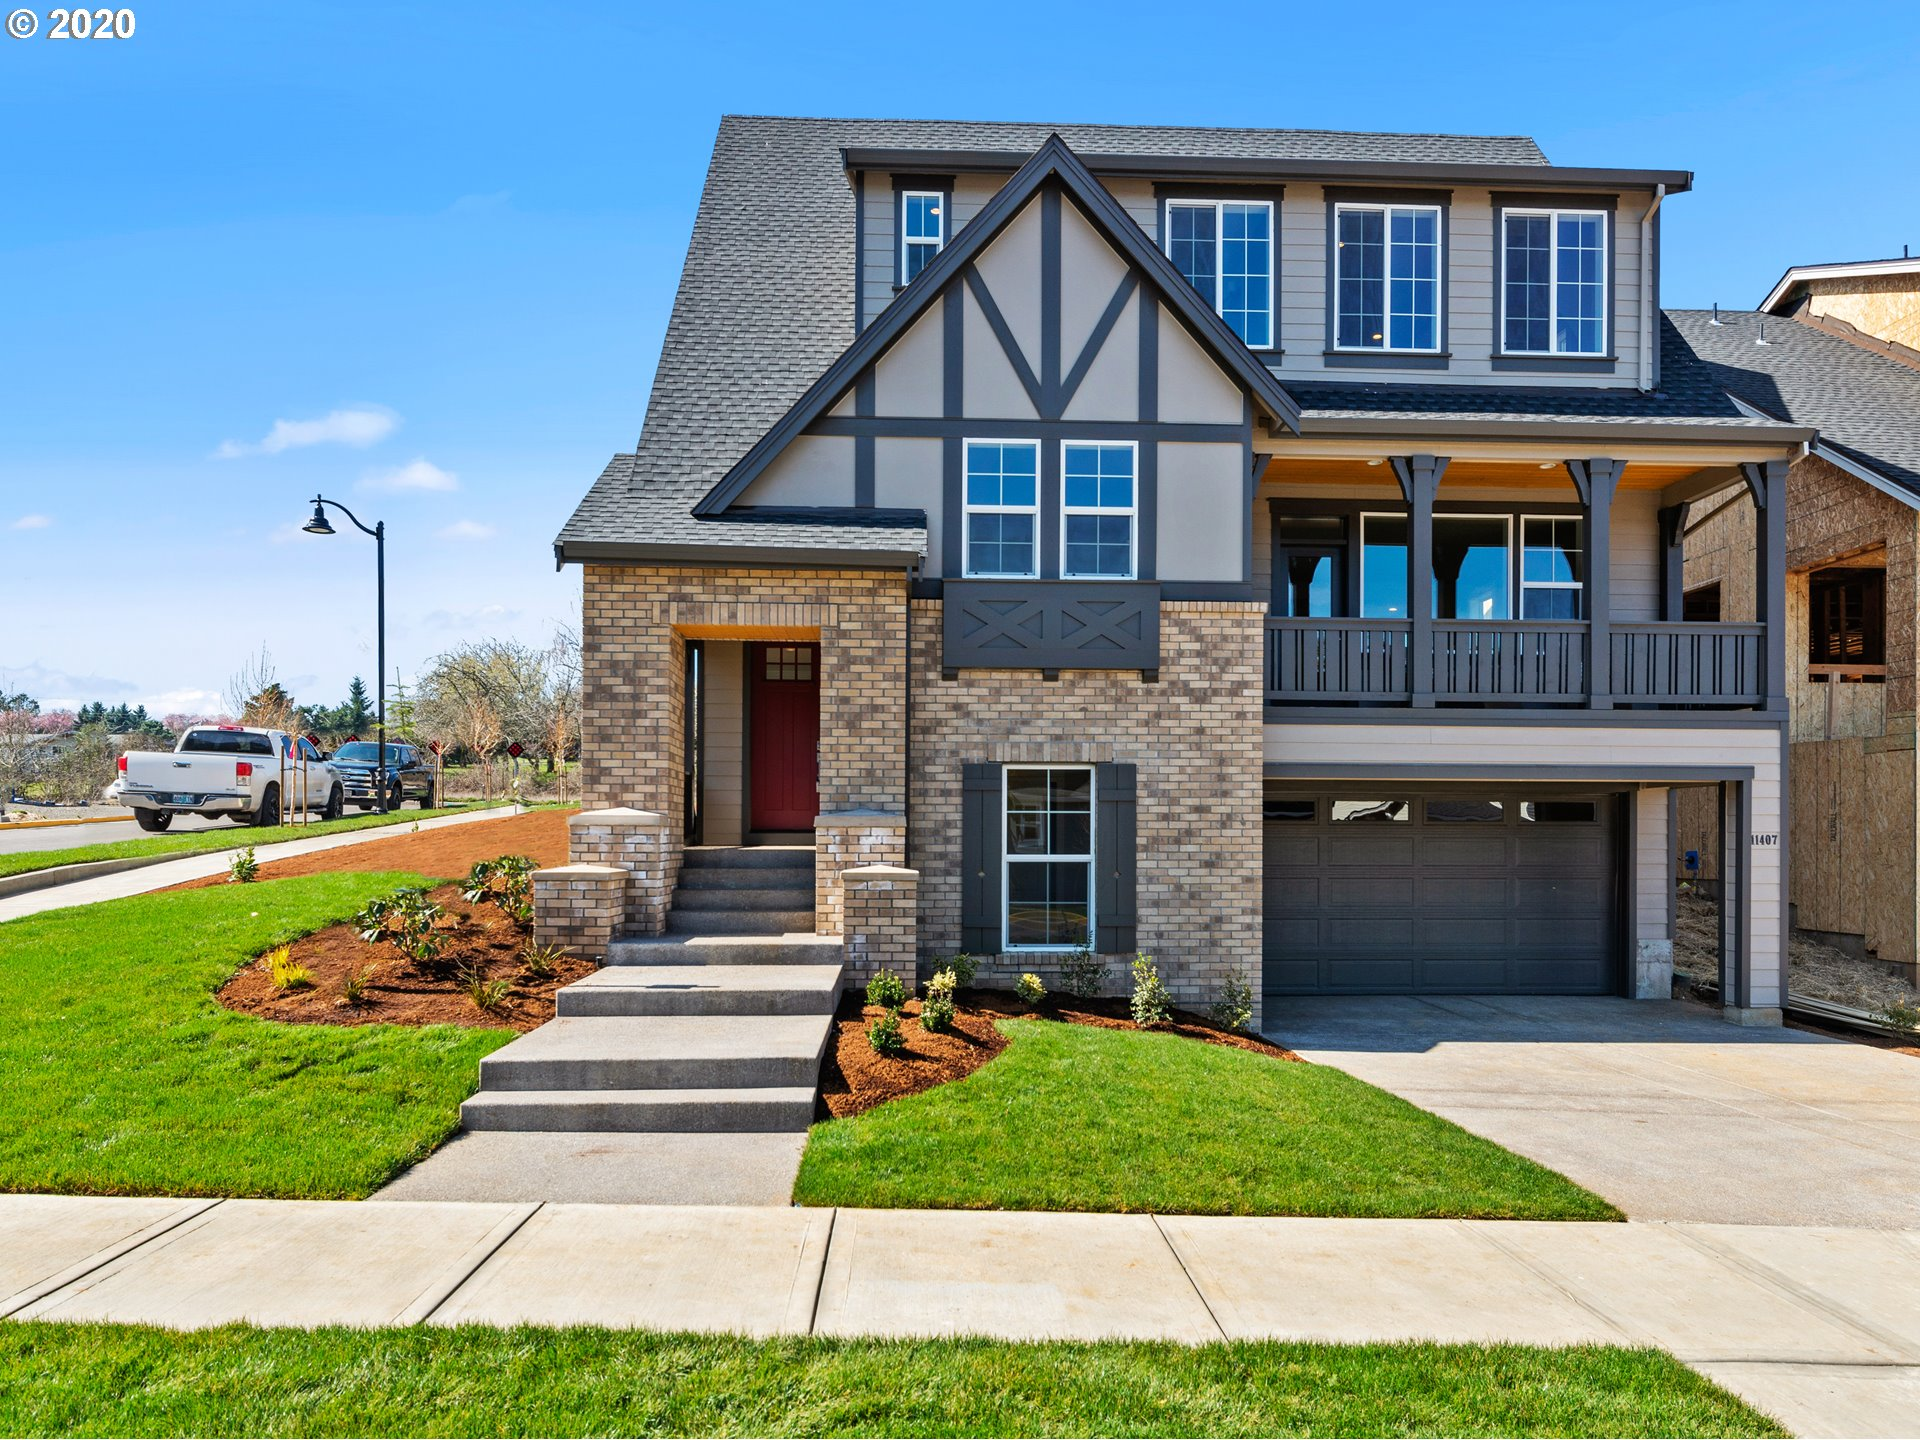 Toll Brothers, America's Luxury Home Builder, is finally building in the Portland area! Experience the exceptional quality, while personalizing your home with our extensive design studio, choose your homesite with panoramic views, and customize your floor plan with structural options. Scouters Mountain offers green space and trails all right in Happy Valley! This Florence floor plan is breaking ground in April, design yours today!